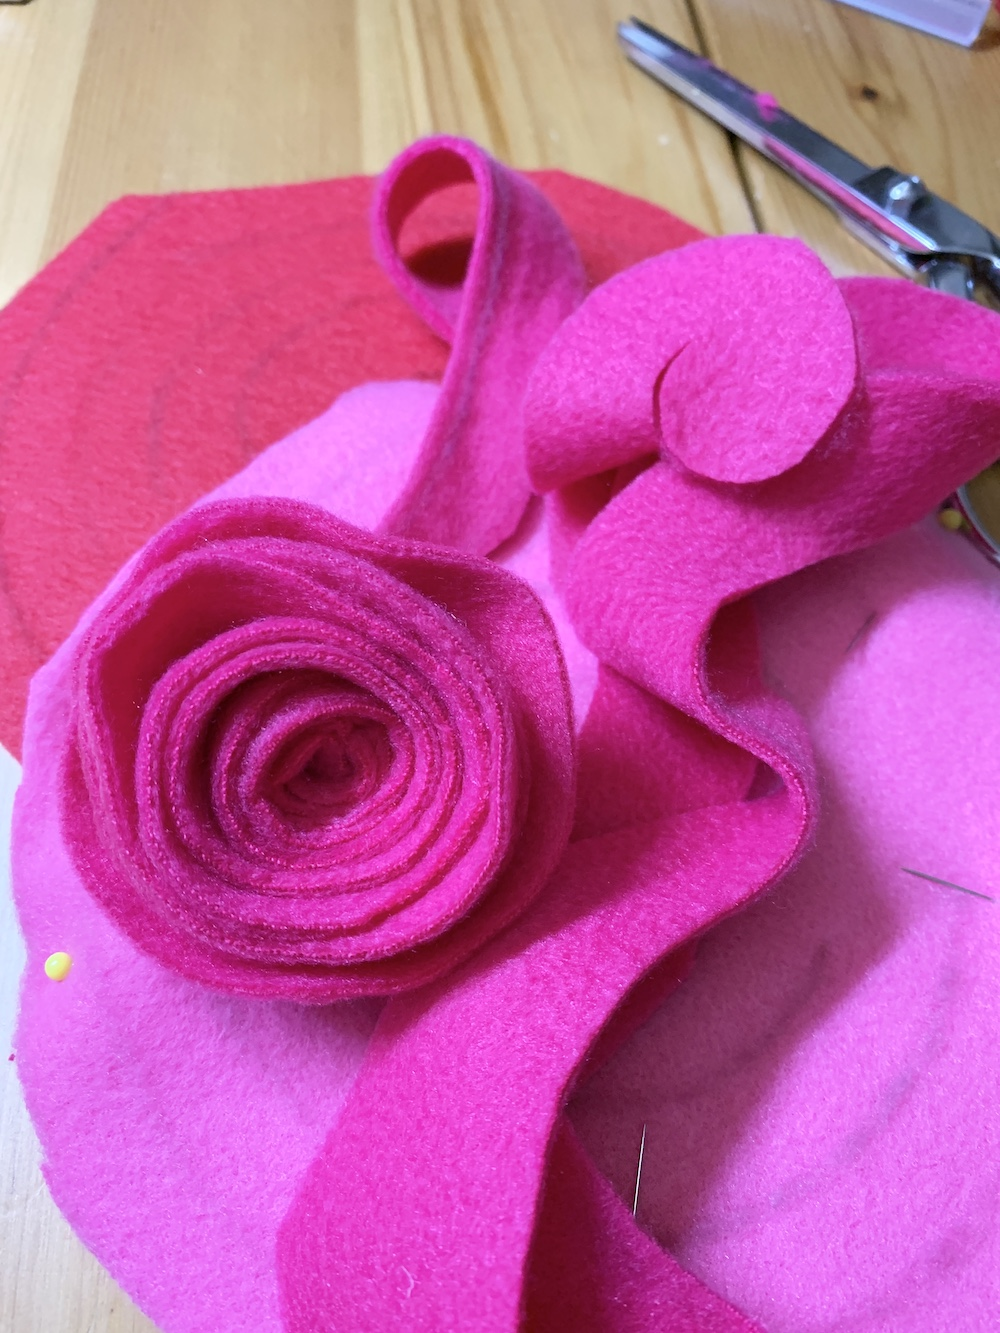 DIY Decor Roll Swirls to Create the Rosettes #ValentinesDay #ValentineHeart #DIY #Decor #DIYDecor #DIYValentineDecor